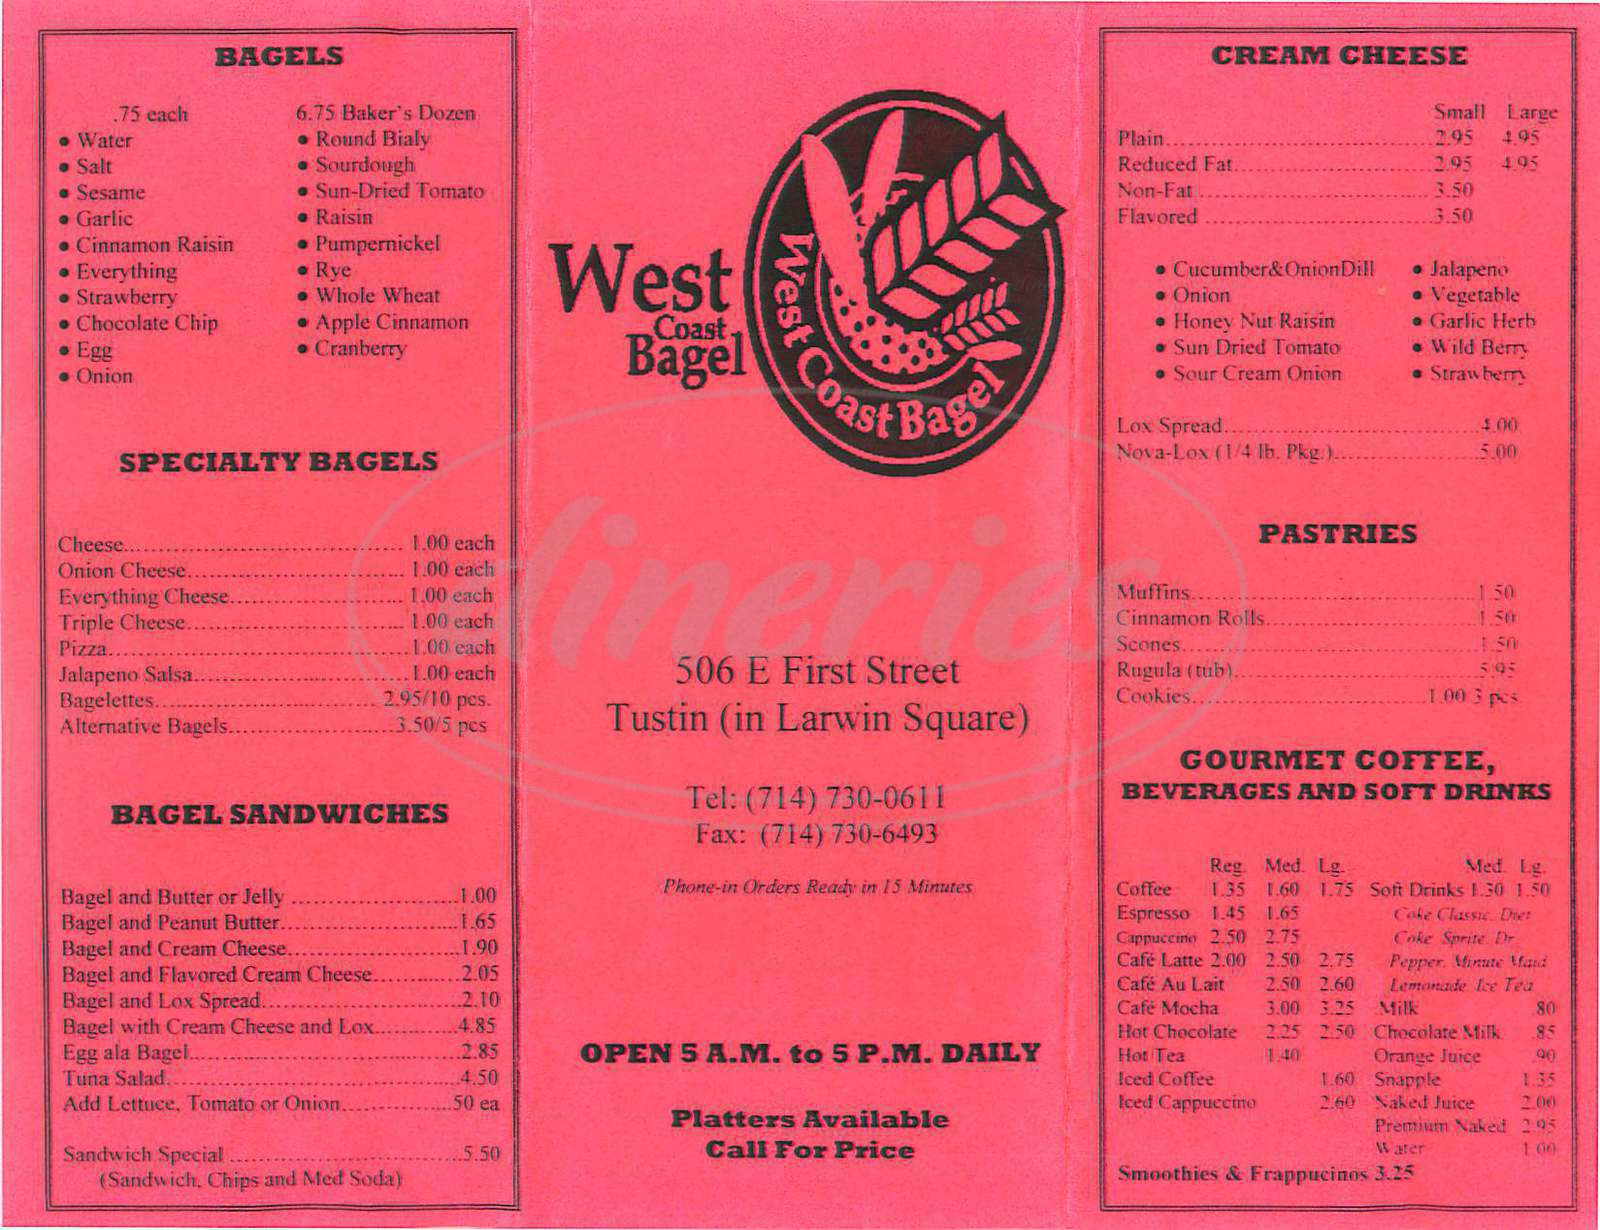 menu for West Coast Bagel